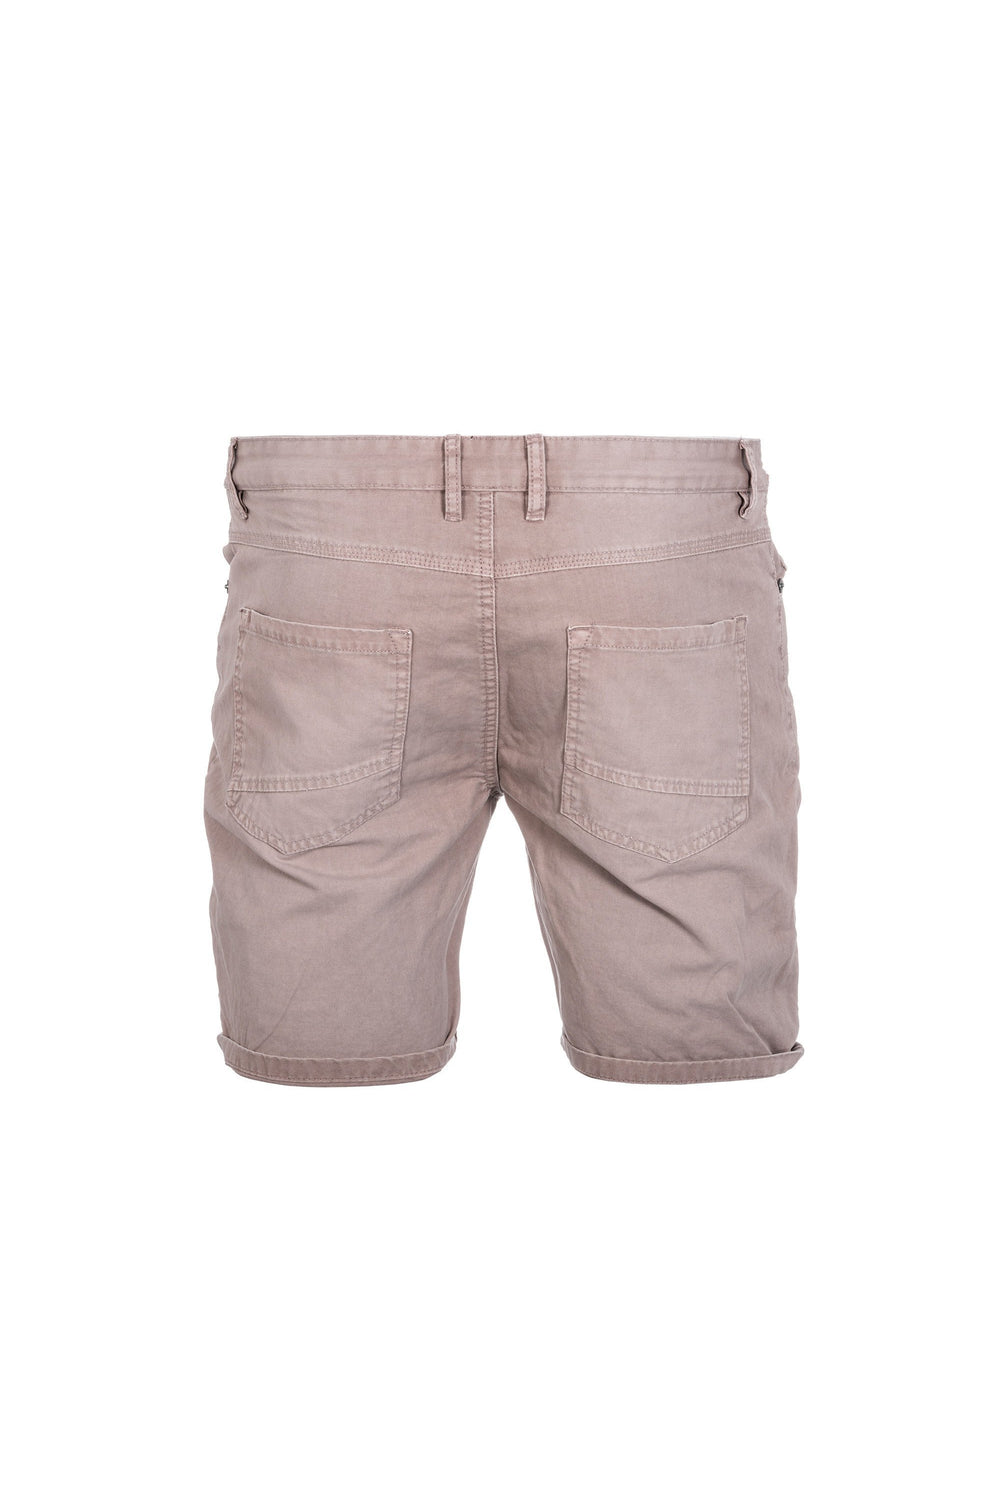 Shorts - Skinny Denim Shorts Dusty Pink